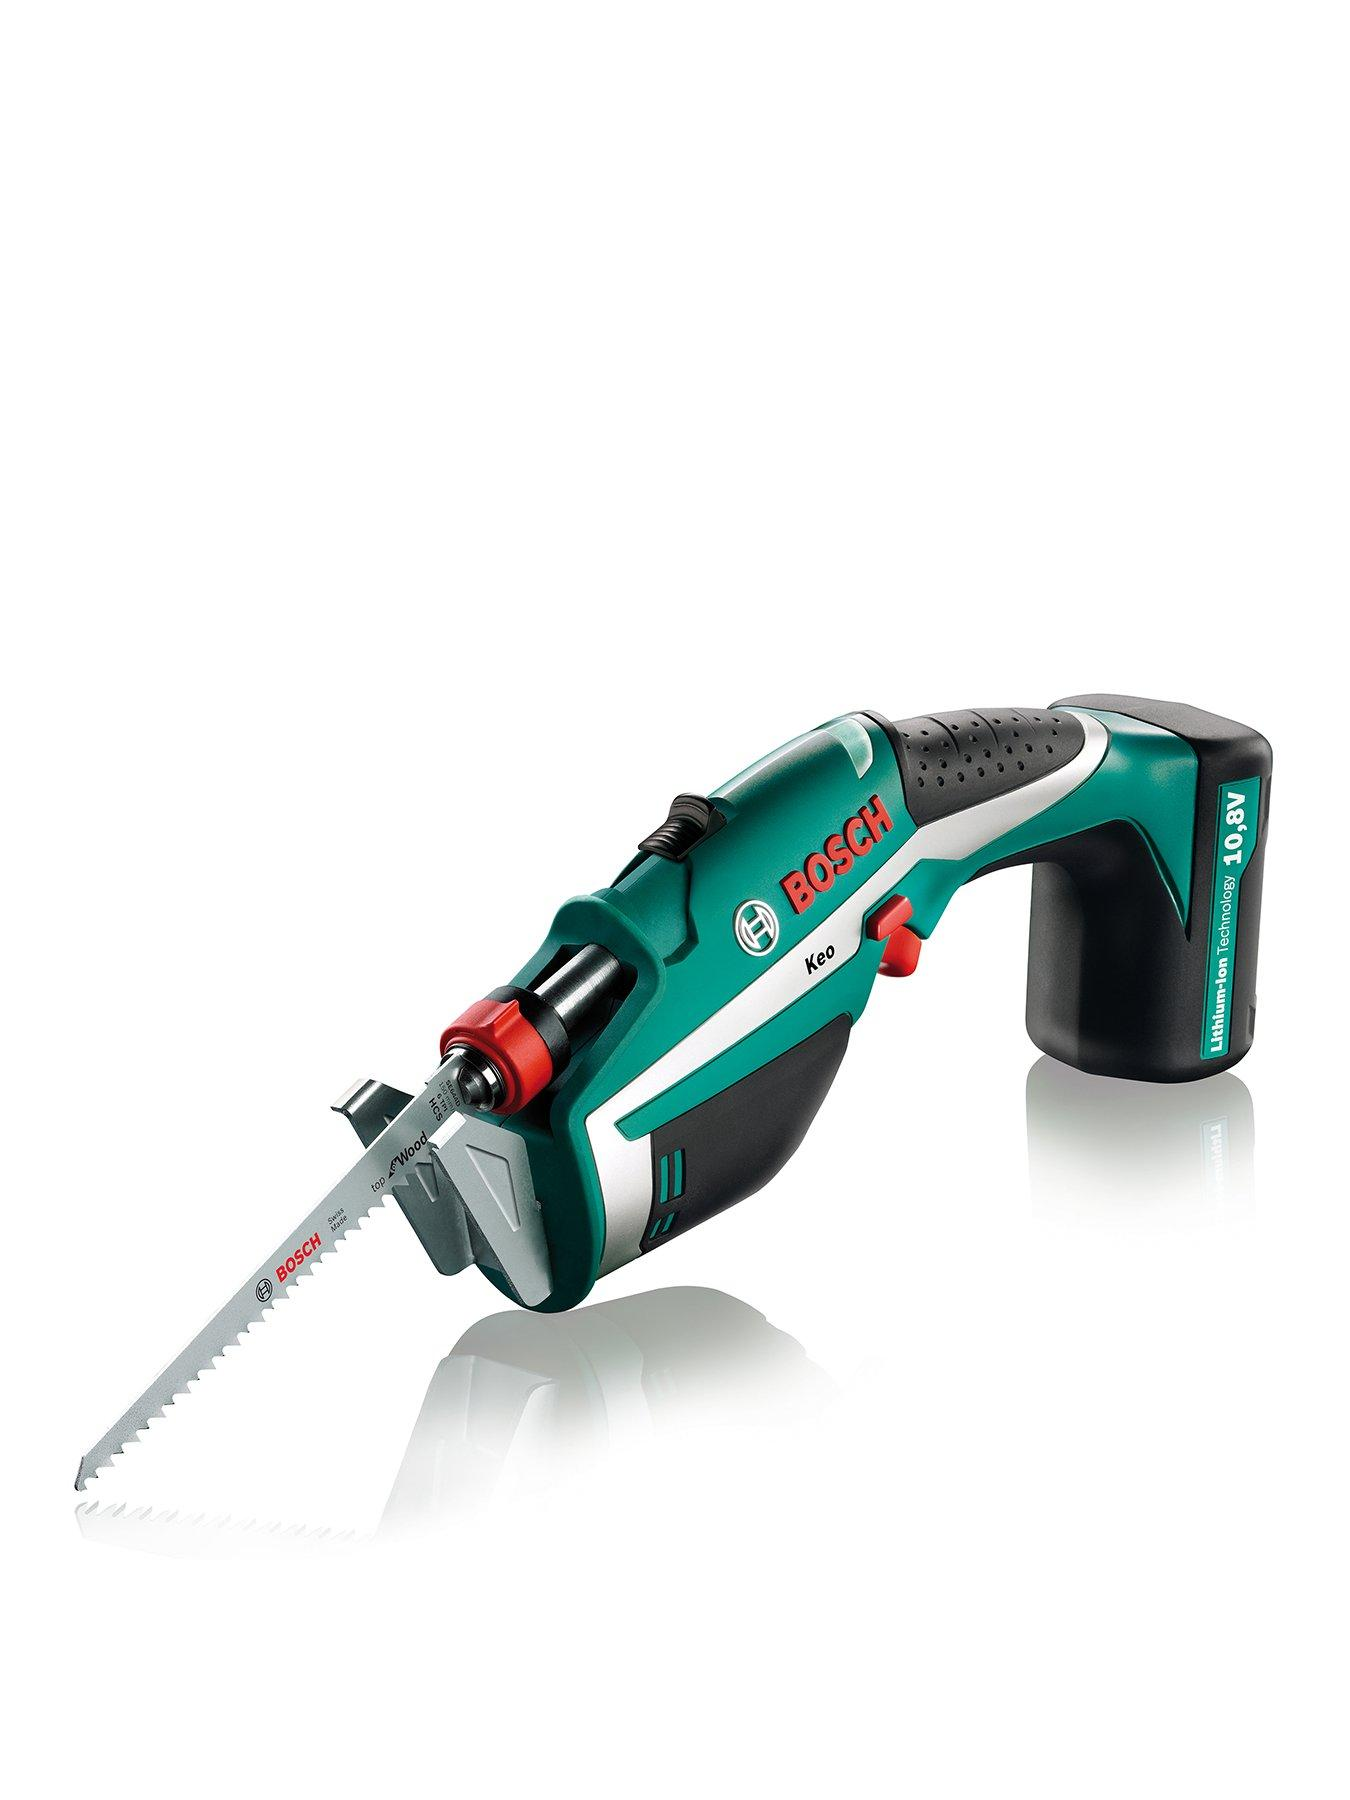 Bosch Keo Cordless Garden Saw with Hand Guard Anti Vibration System 10.8V